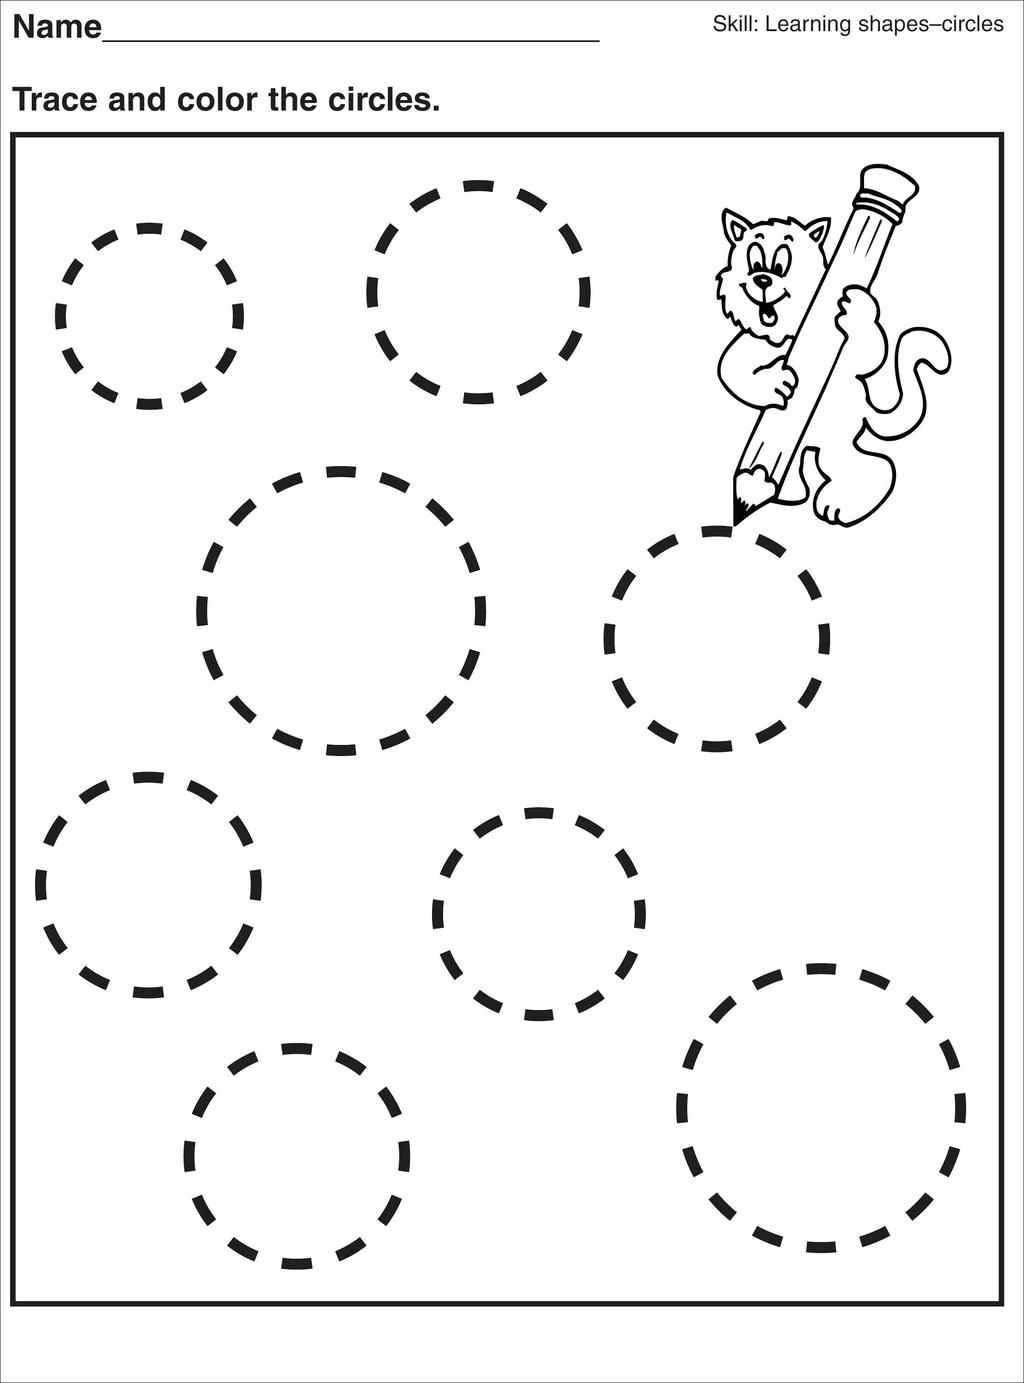 Free Circles Shapes Coloring Pages printable